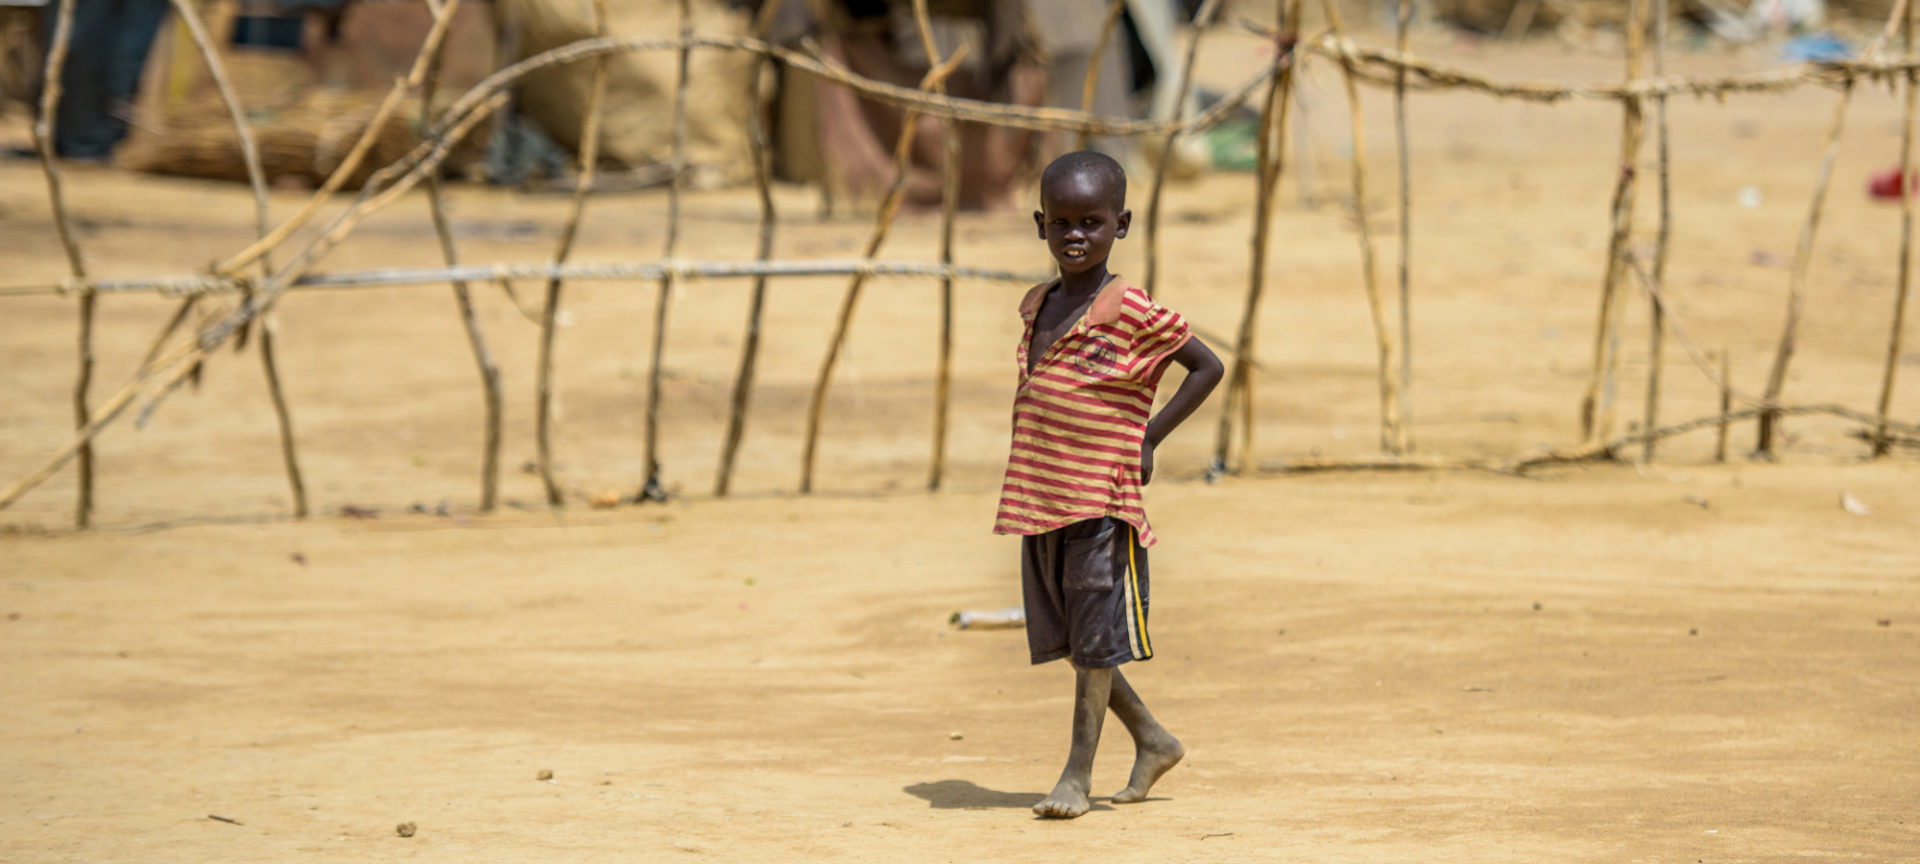 Boy in IDP camp, Twic, Warrup State, South Sudan.